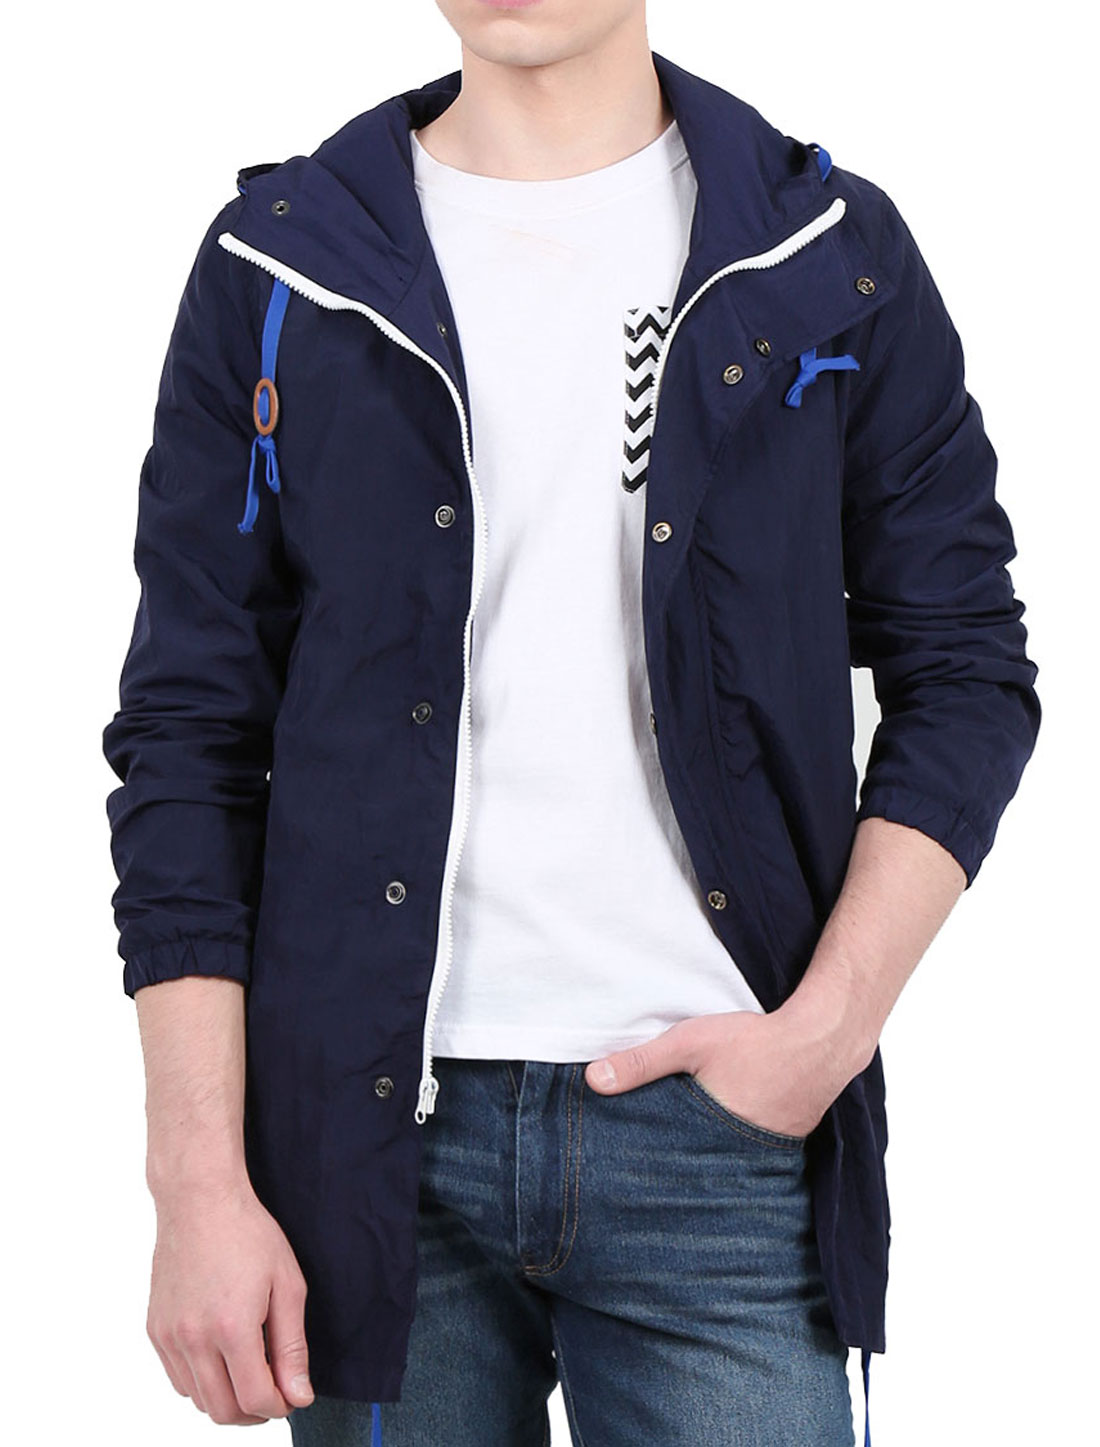 Men Or Youth Zip Front/ Pocket Long Sleeves Drawstring Hoodie Jacket Blue S